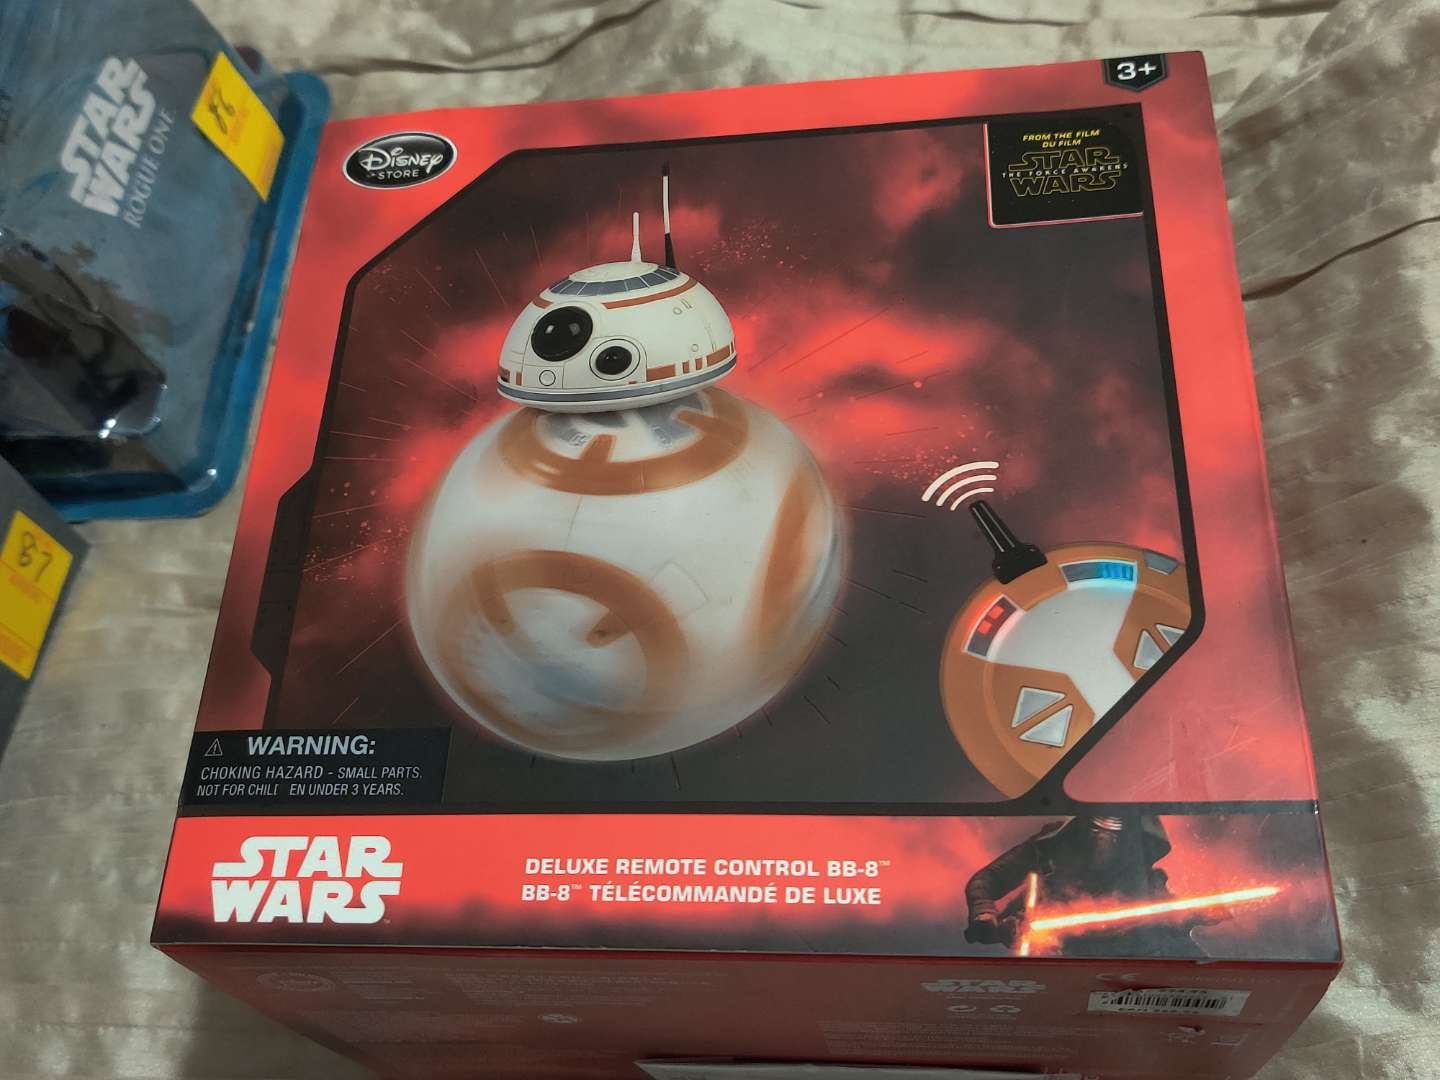 90 BB-8 Deluxe Remote Control Star Wars Disney Limited